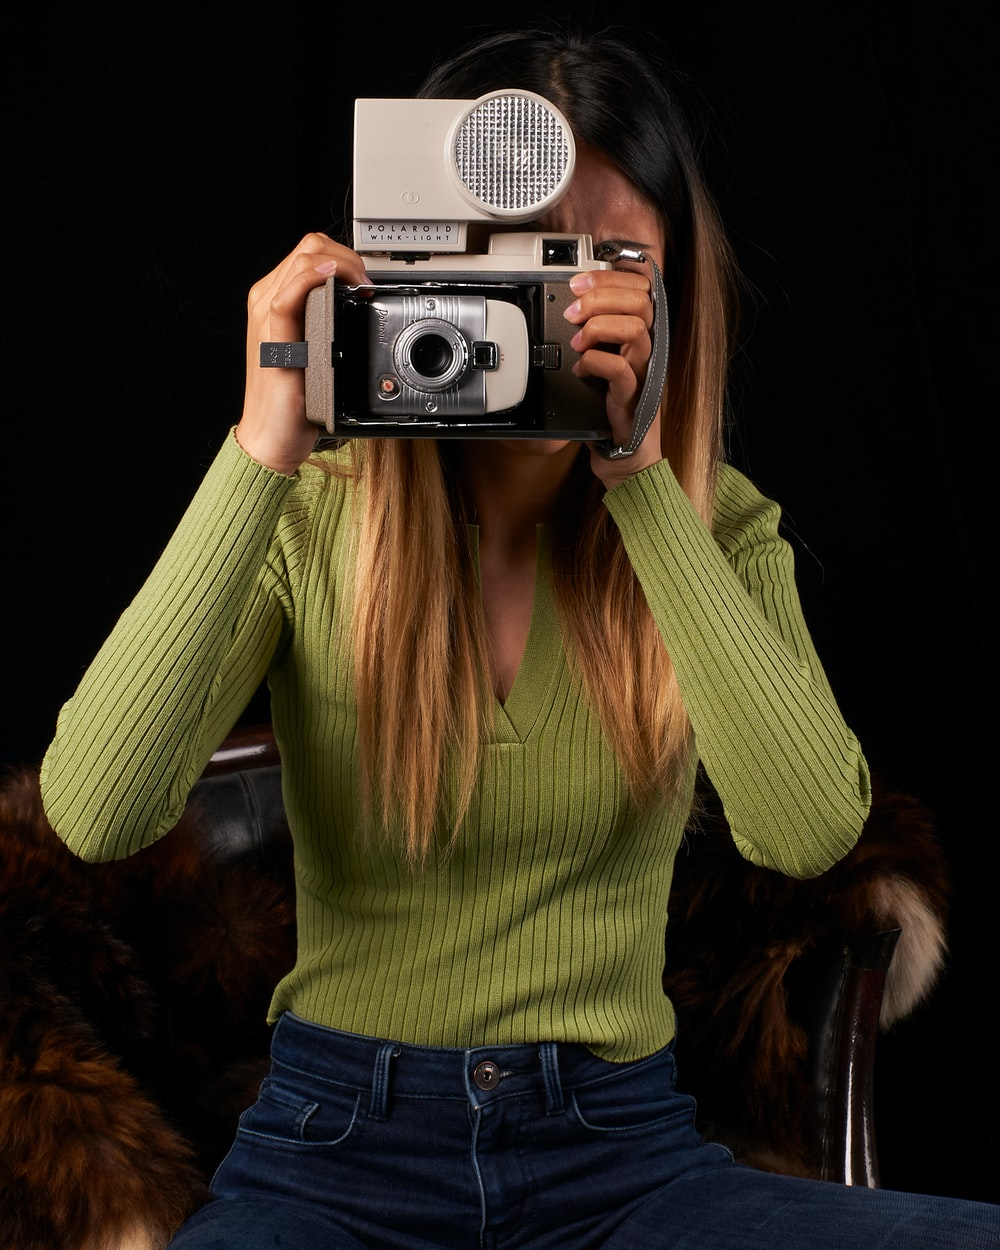 woman in green sweater holding silver and black camera